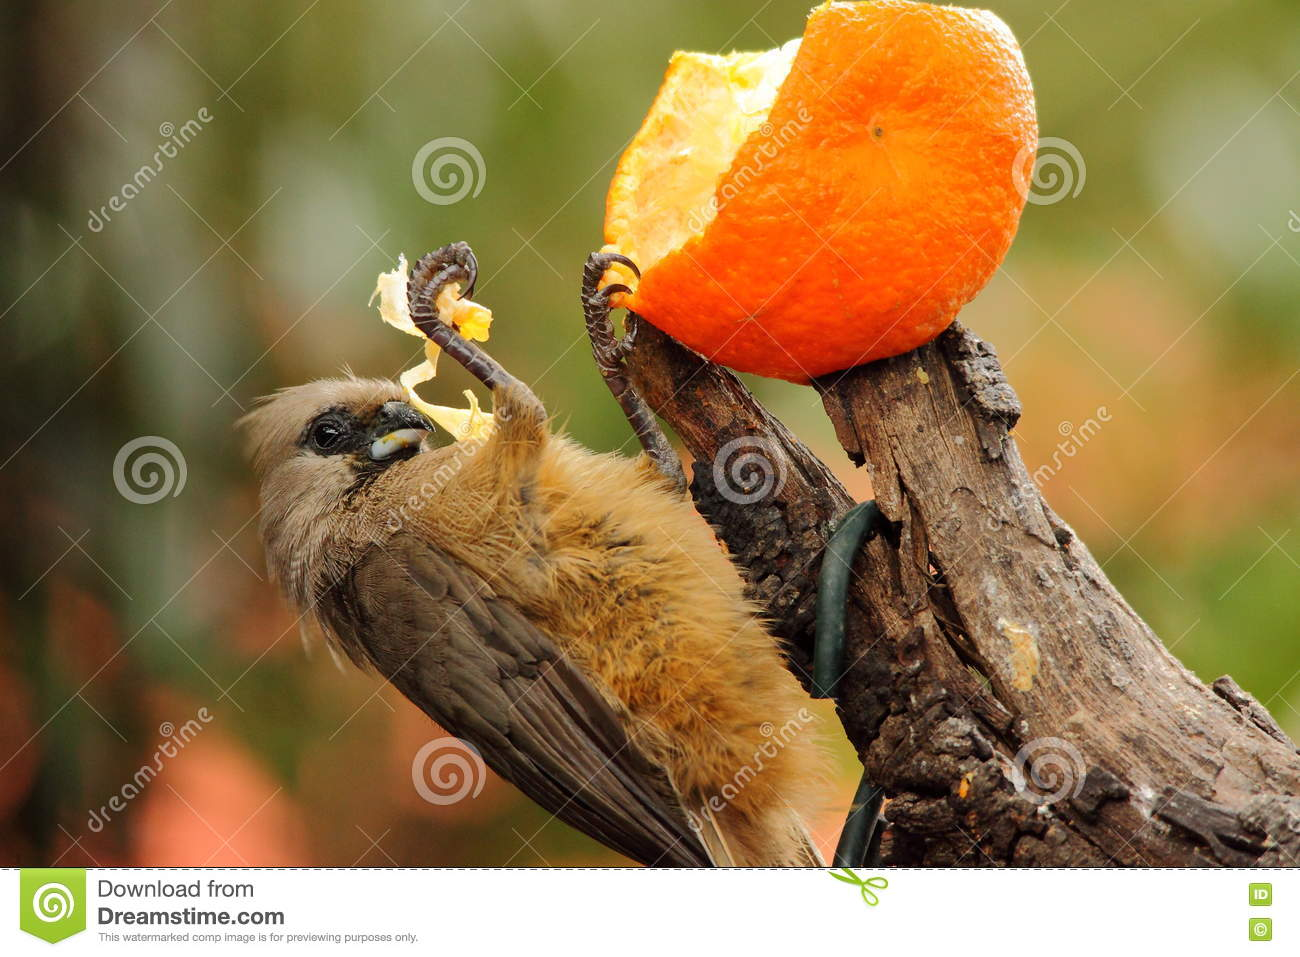 Feed Wild Birds In Times Of Drought For Conservation Purposes Stock ...